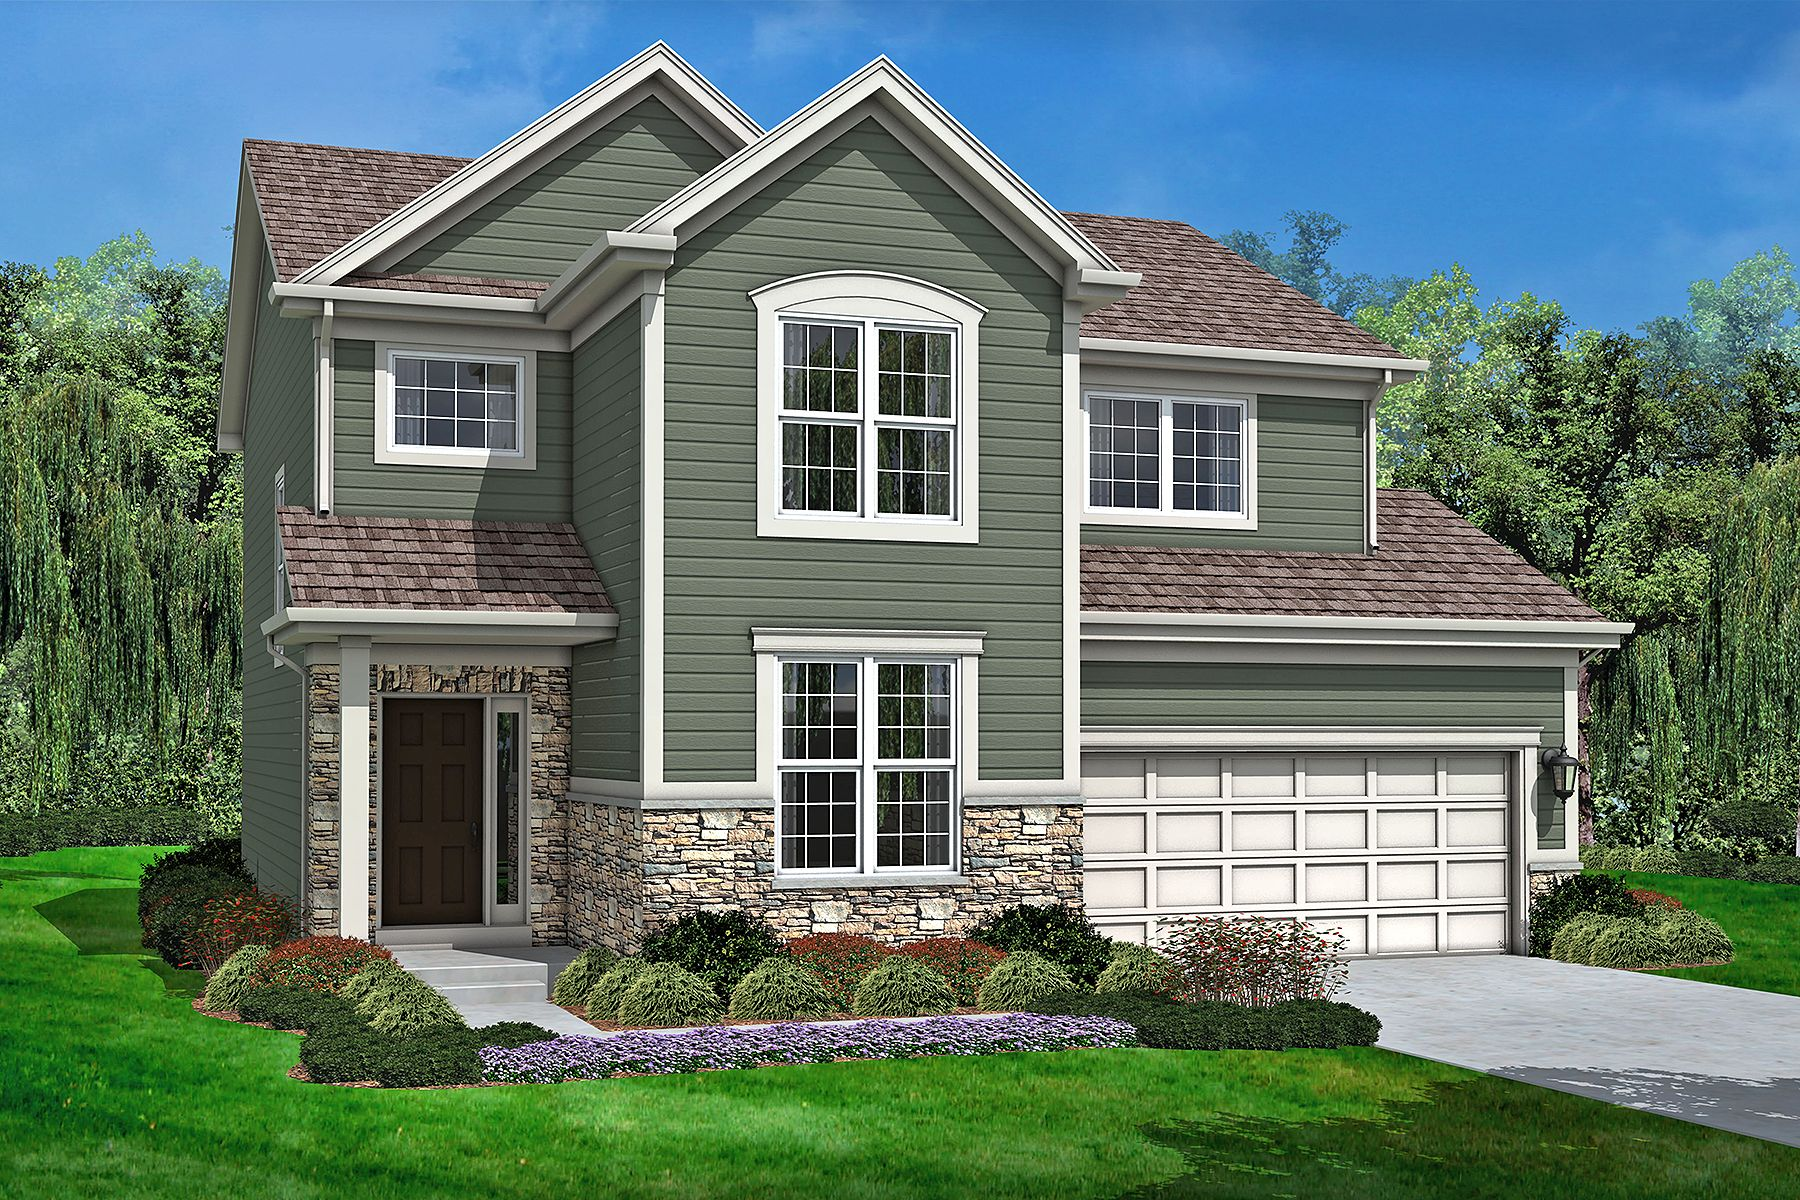 New Construction Homes And Floor Plans In Algonquin Il